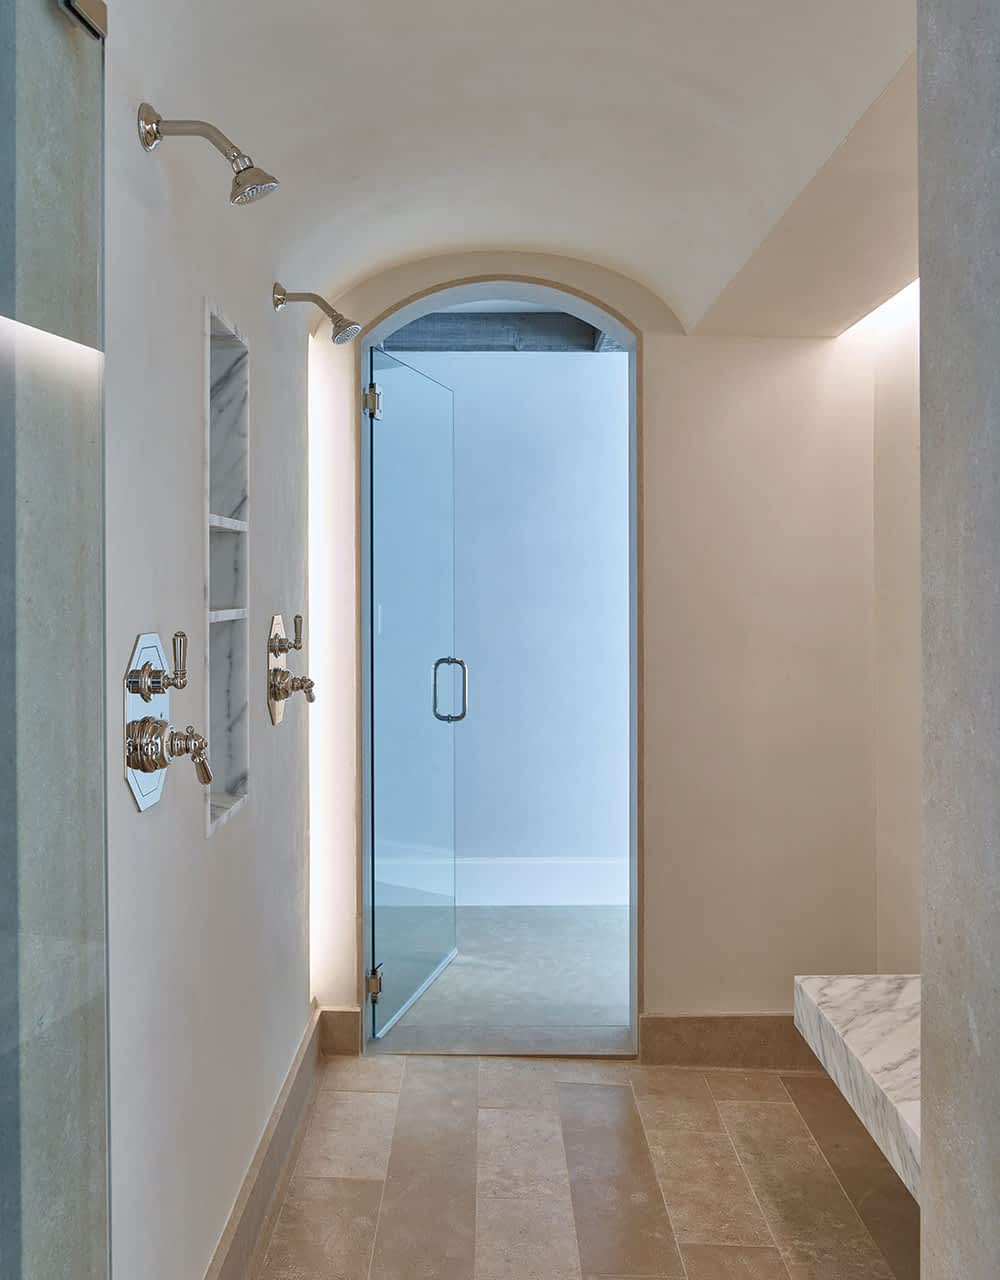 Showering is comfortable and glamorous with a cantilevered bench and honed and aged Calacatta marble. Walls are smooth plaster, and the floor is tumbled French limestone. All shower materials are from Concept Studio in Costa Mesa, California.